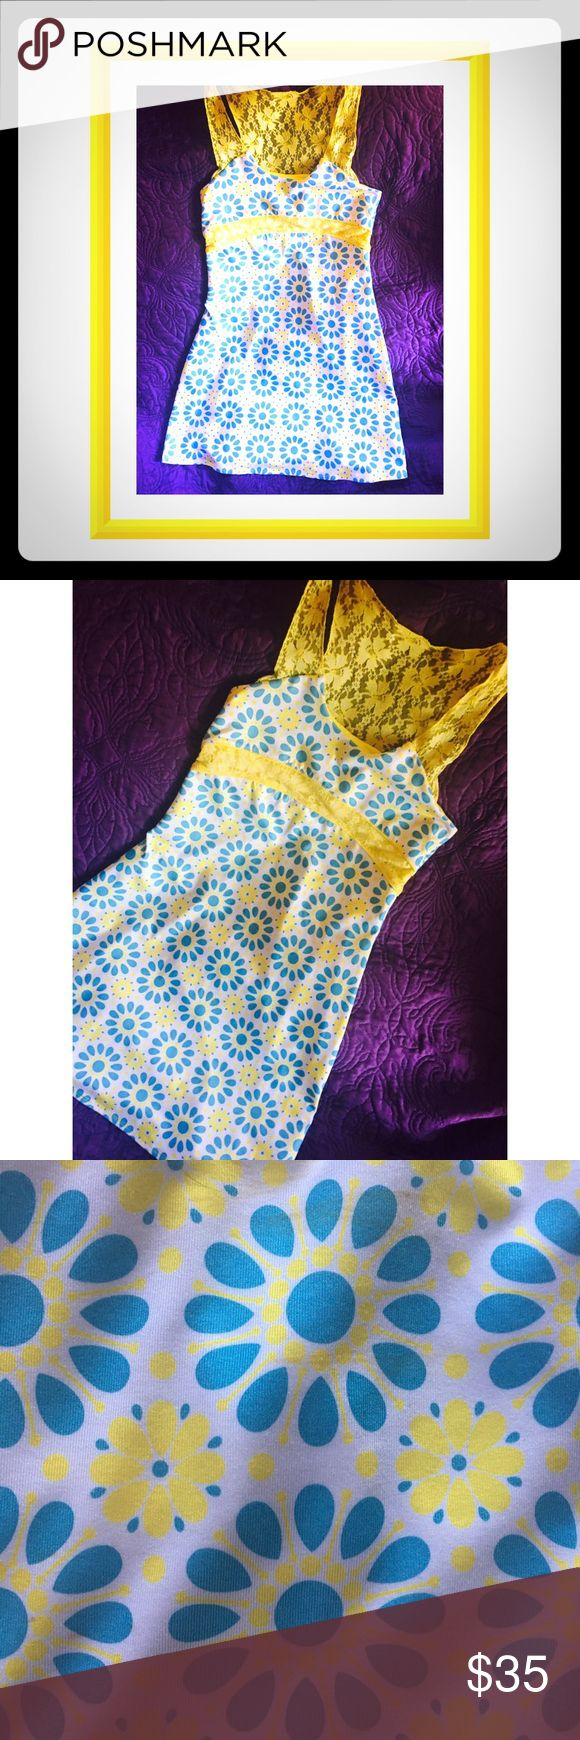 🎾 Wonderful Wimbledon Vintage Tennis Dress 🎾 Simply smashing vintage Wimbledon tennis dress! Poly/spandex/lace with shelf bra. Immaculate vintage condition! No stains, snags. Perfect for spring & summer on the courts! 🎾 Wimbledon Other